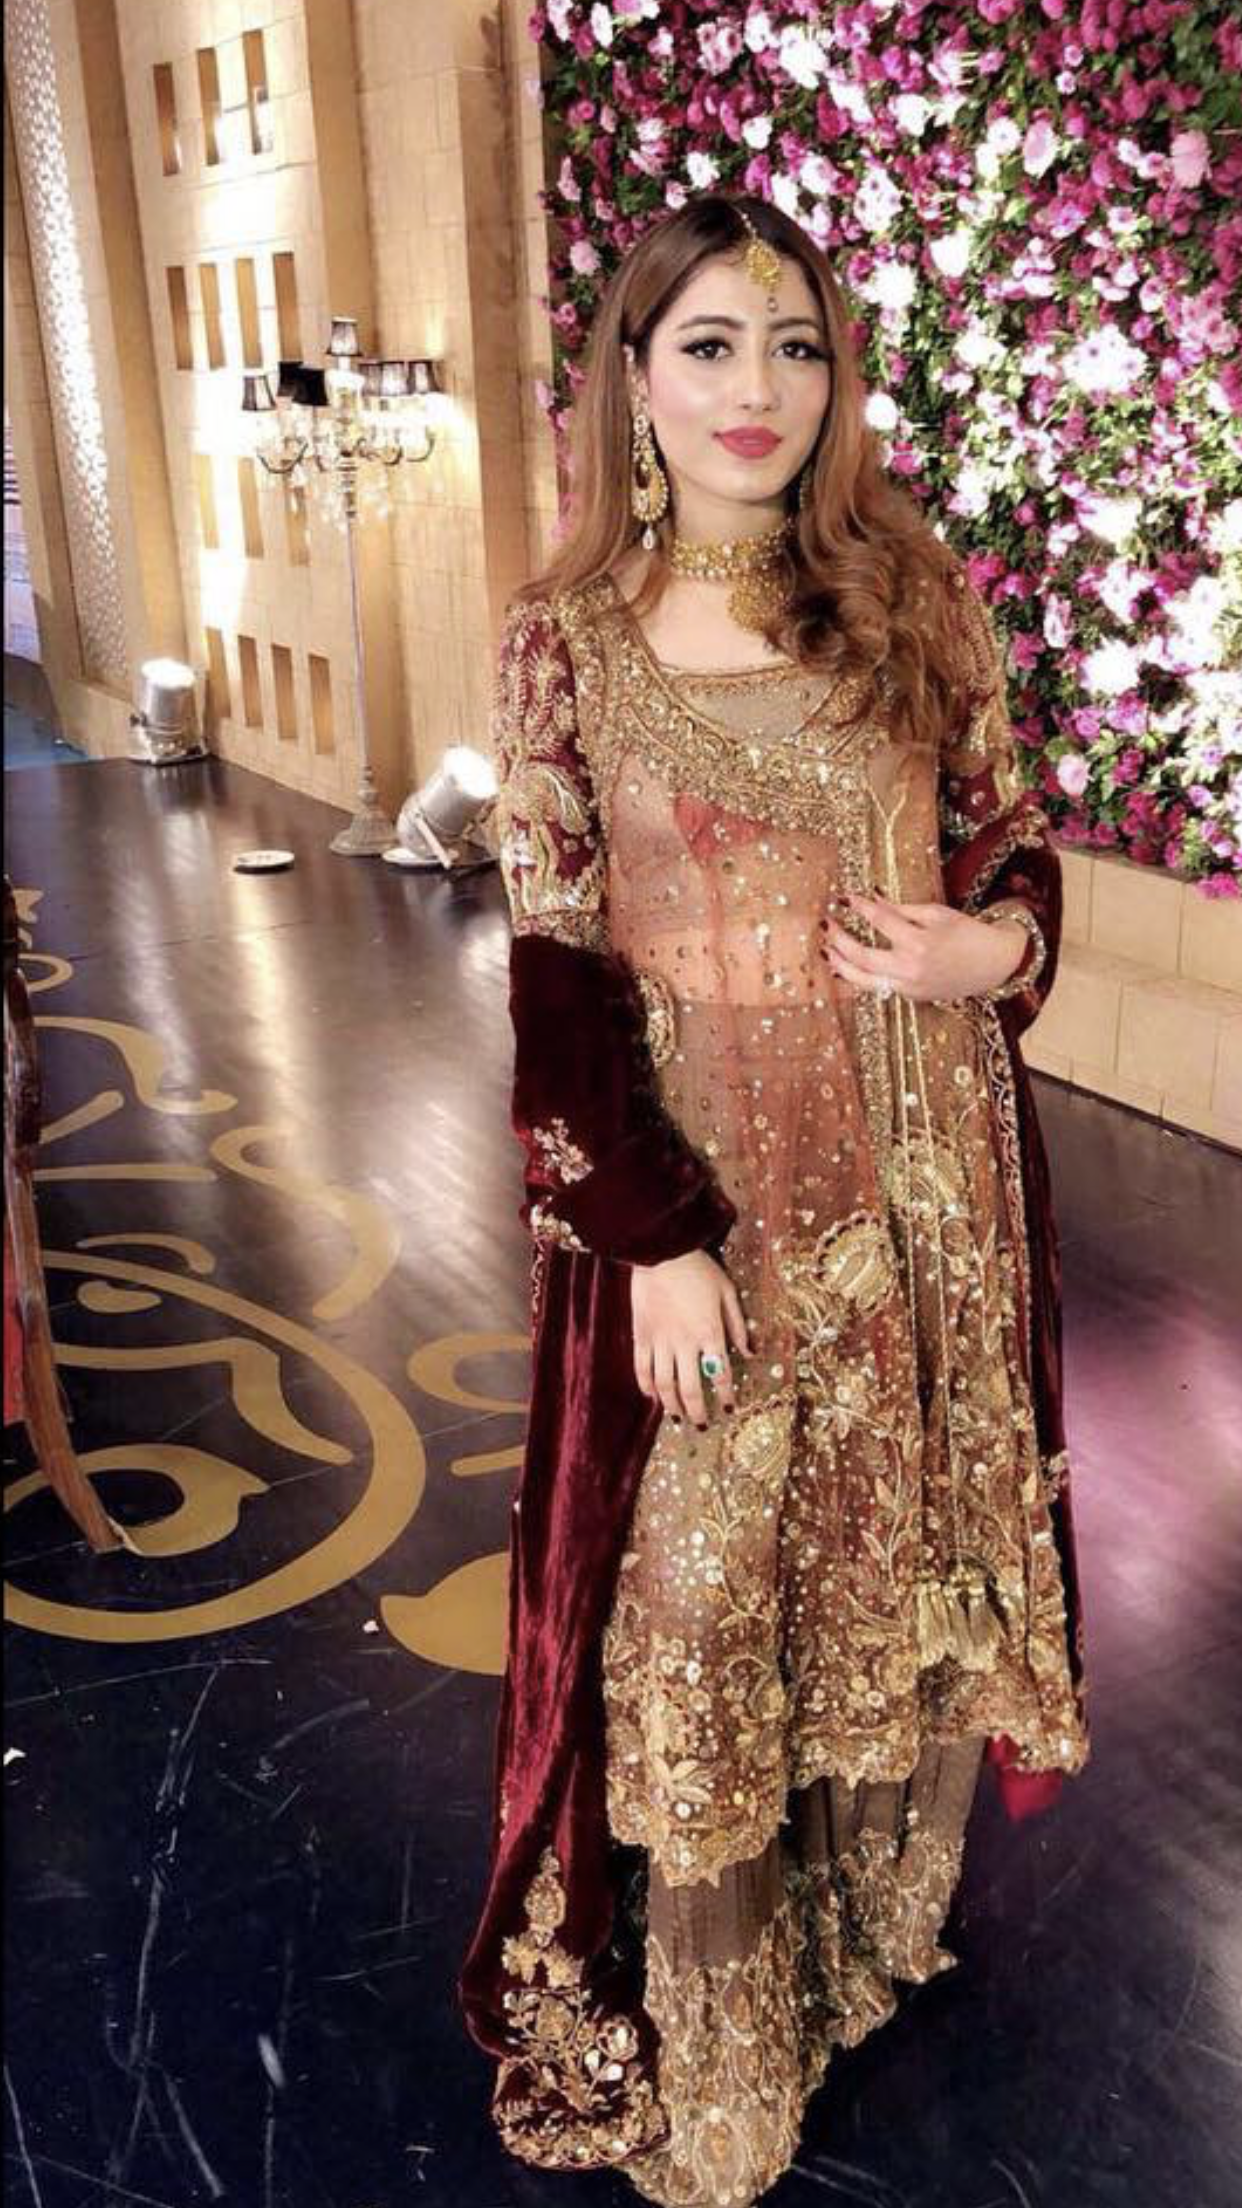 Brides cousin Mehndi/barat outfit | special occassions in